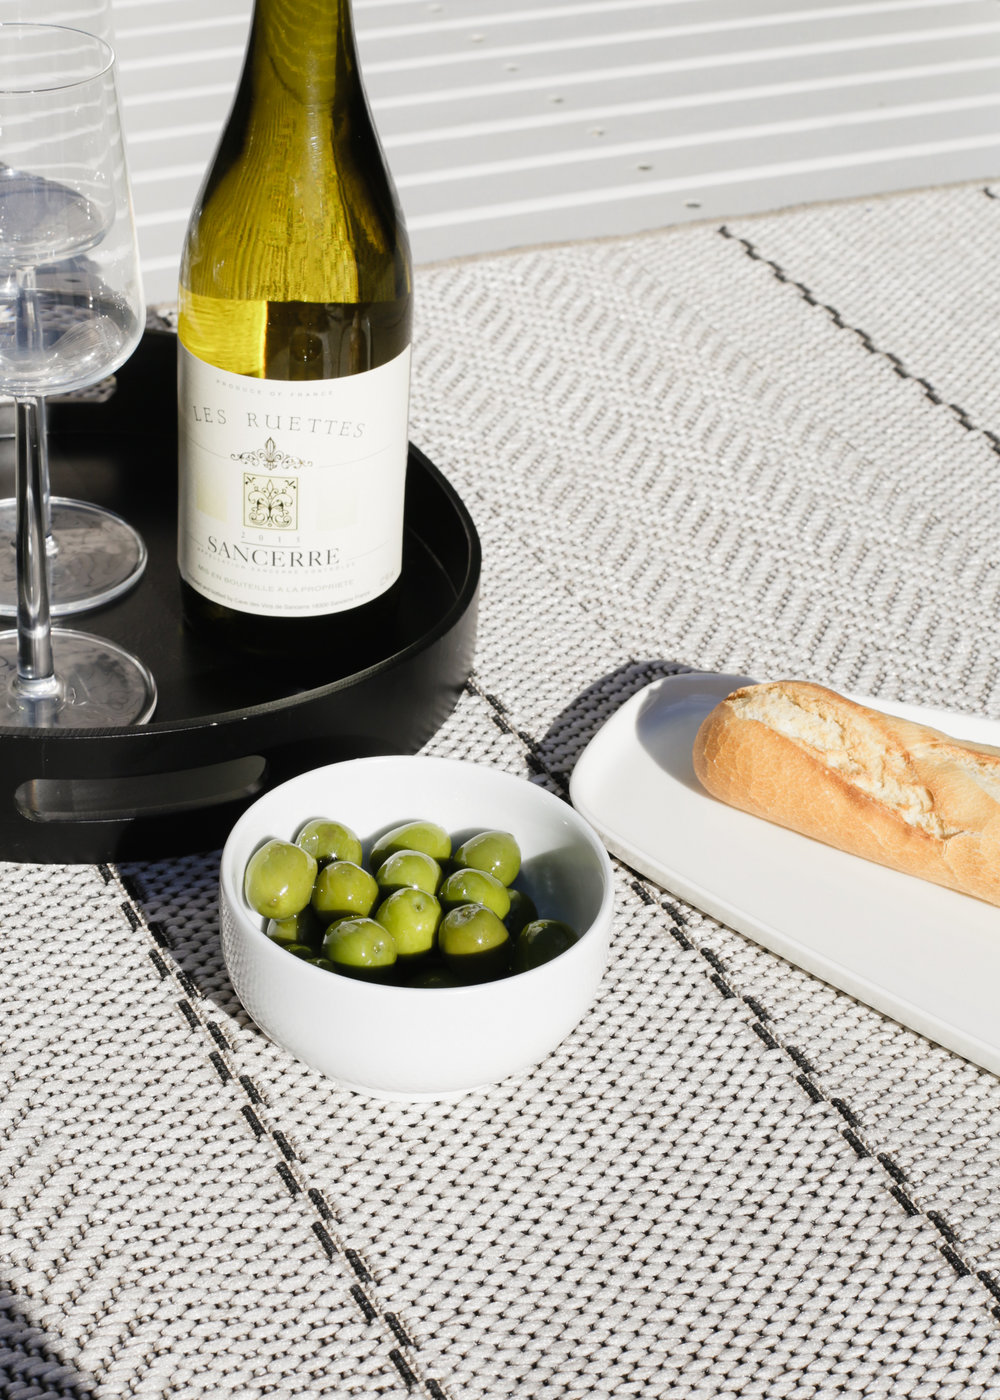 Dining al fresco Sancerre olives and baguette | Design Hunter